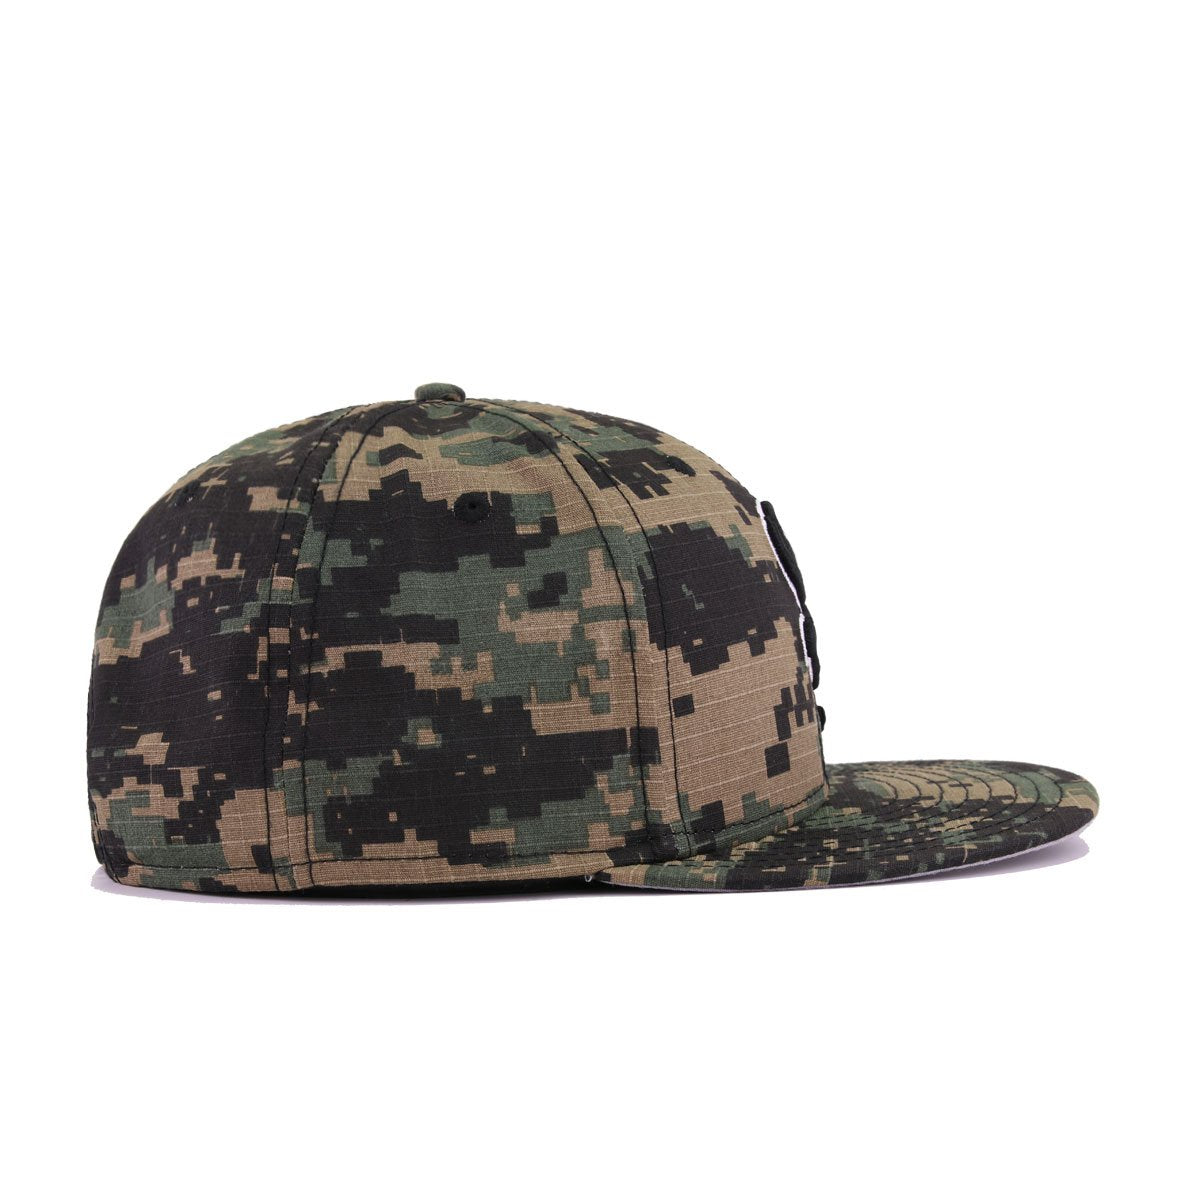 Chicago White Sox Digital Army Camouflage New Era 9Fifty Snapback